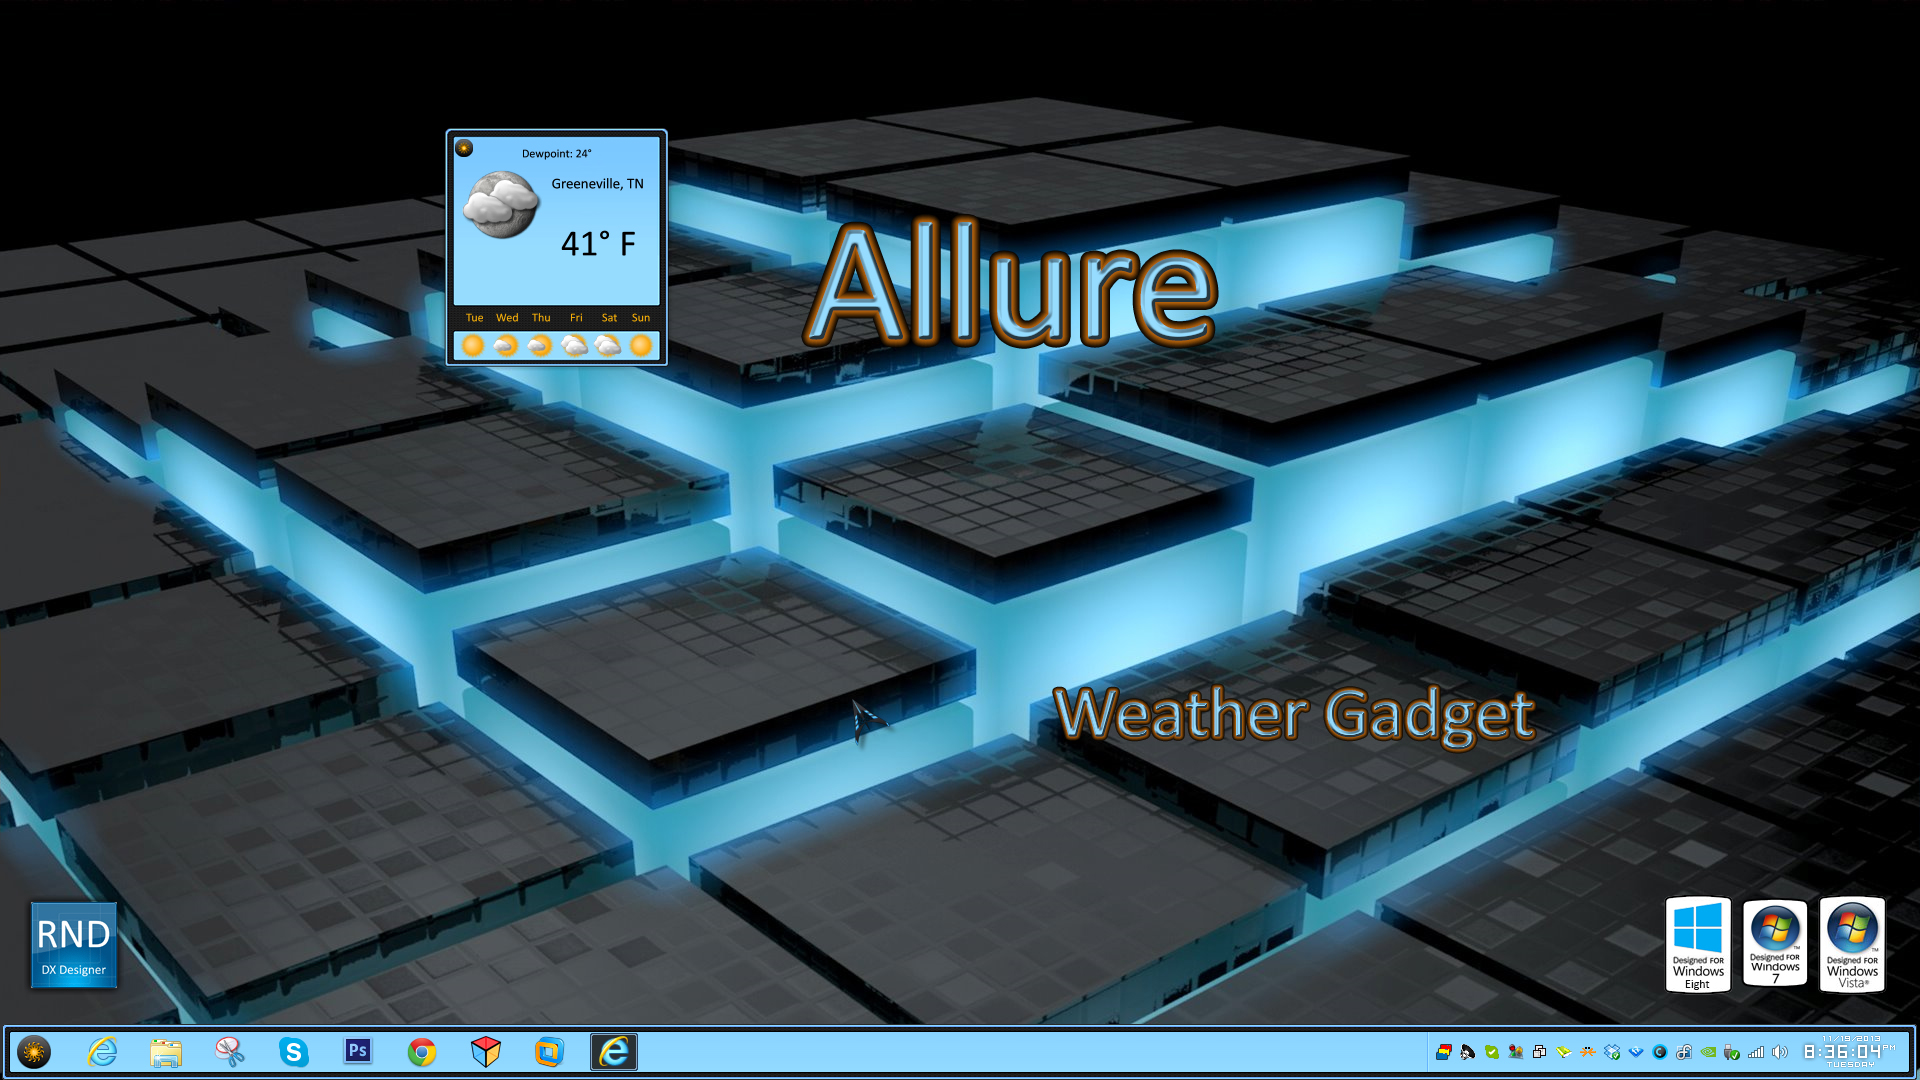 Allure Weather Gadget